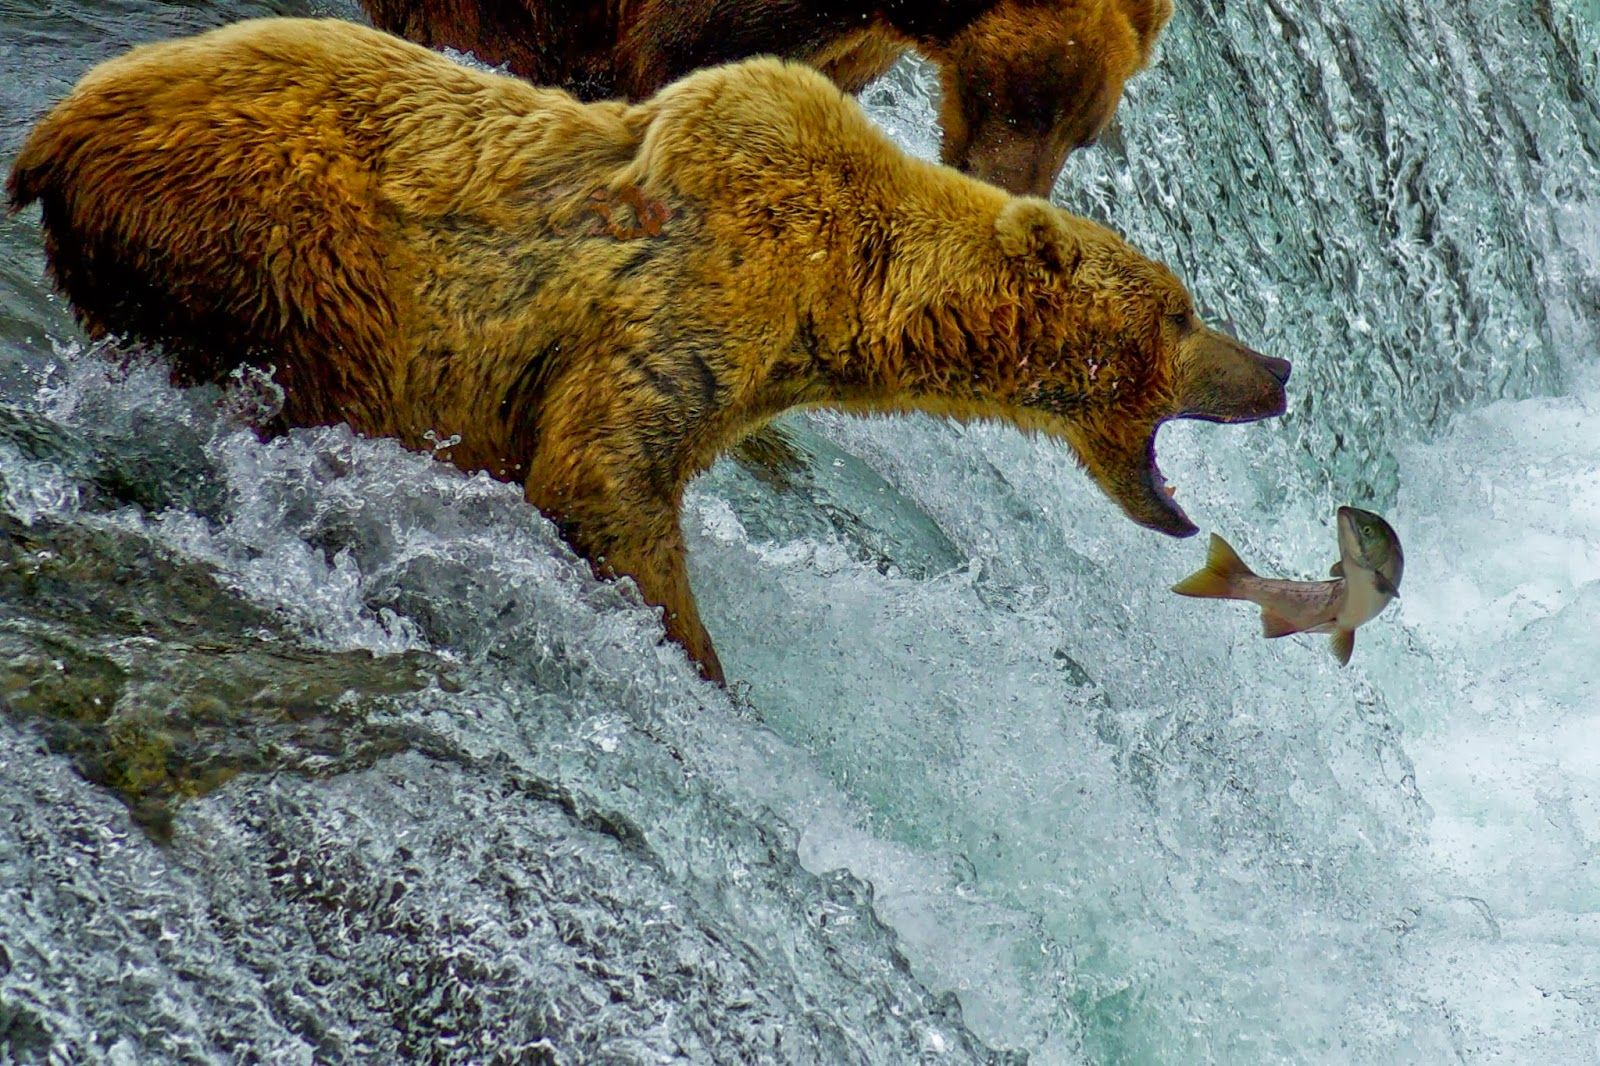 Grizzly bear catching fish grizzly salmon pinterest for Bear catching fish